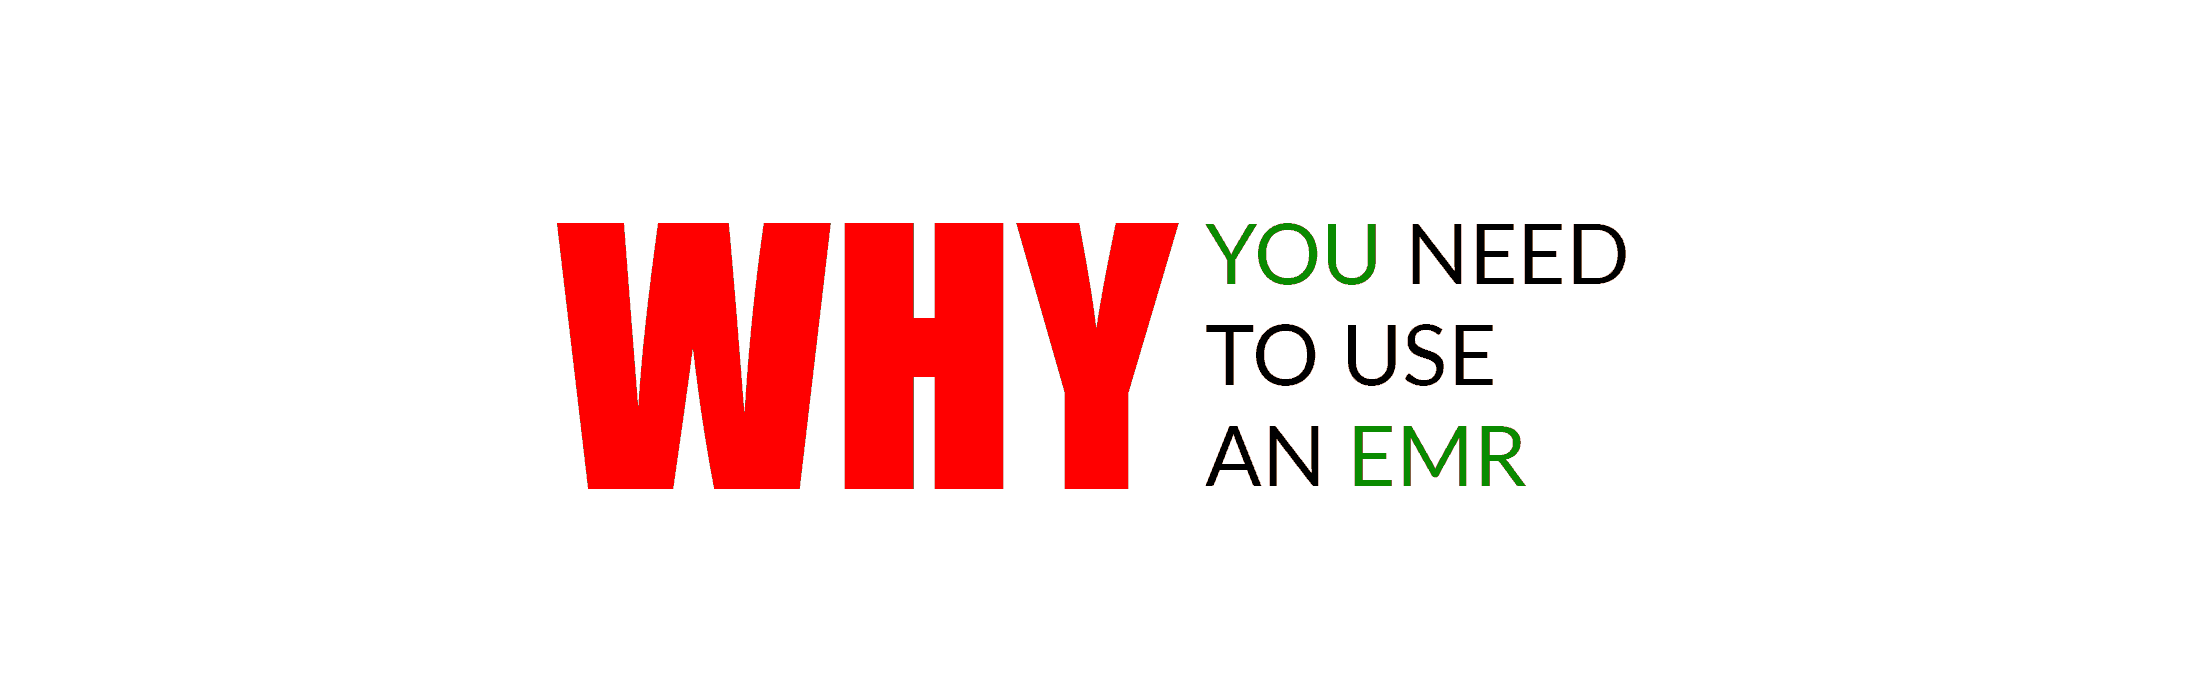 Why you need to use an emr